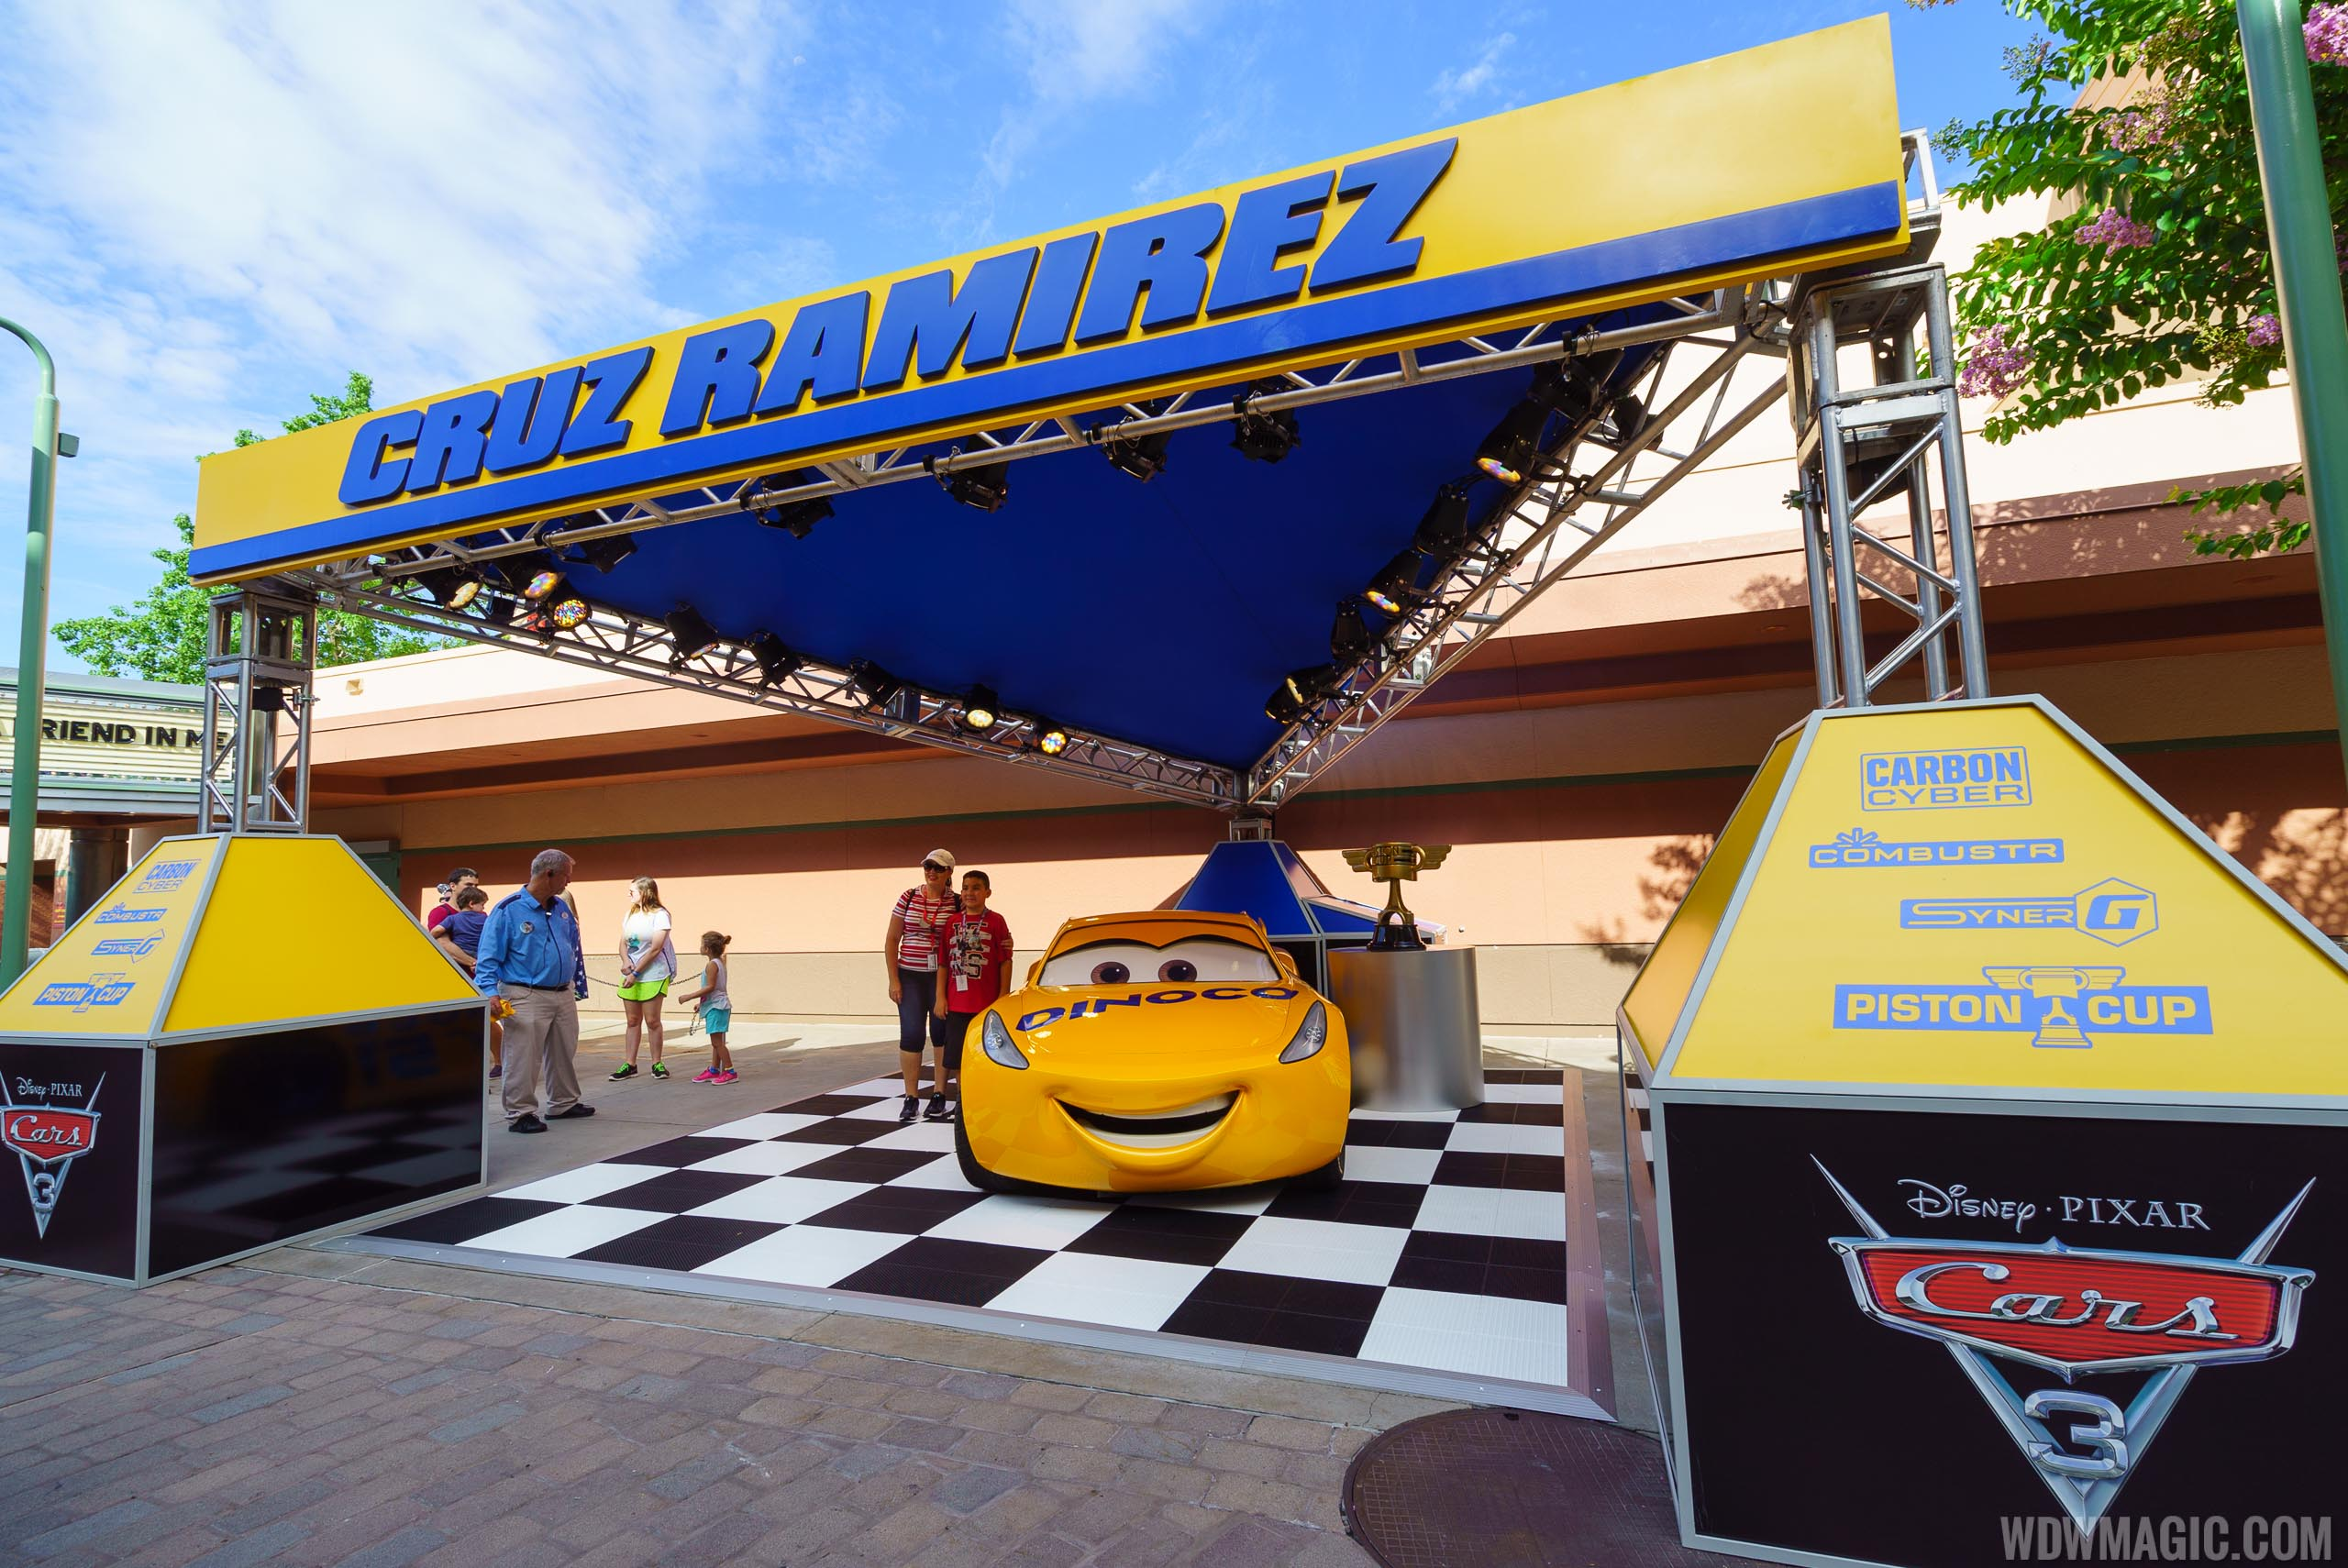 b8bf95601006 Lightning McQueen s Racing Academy is planned to open early 2019 at Disney s  Hollywood Studios. Cruz Ramirez previously had a meet and greet in Pixar  place